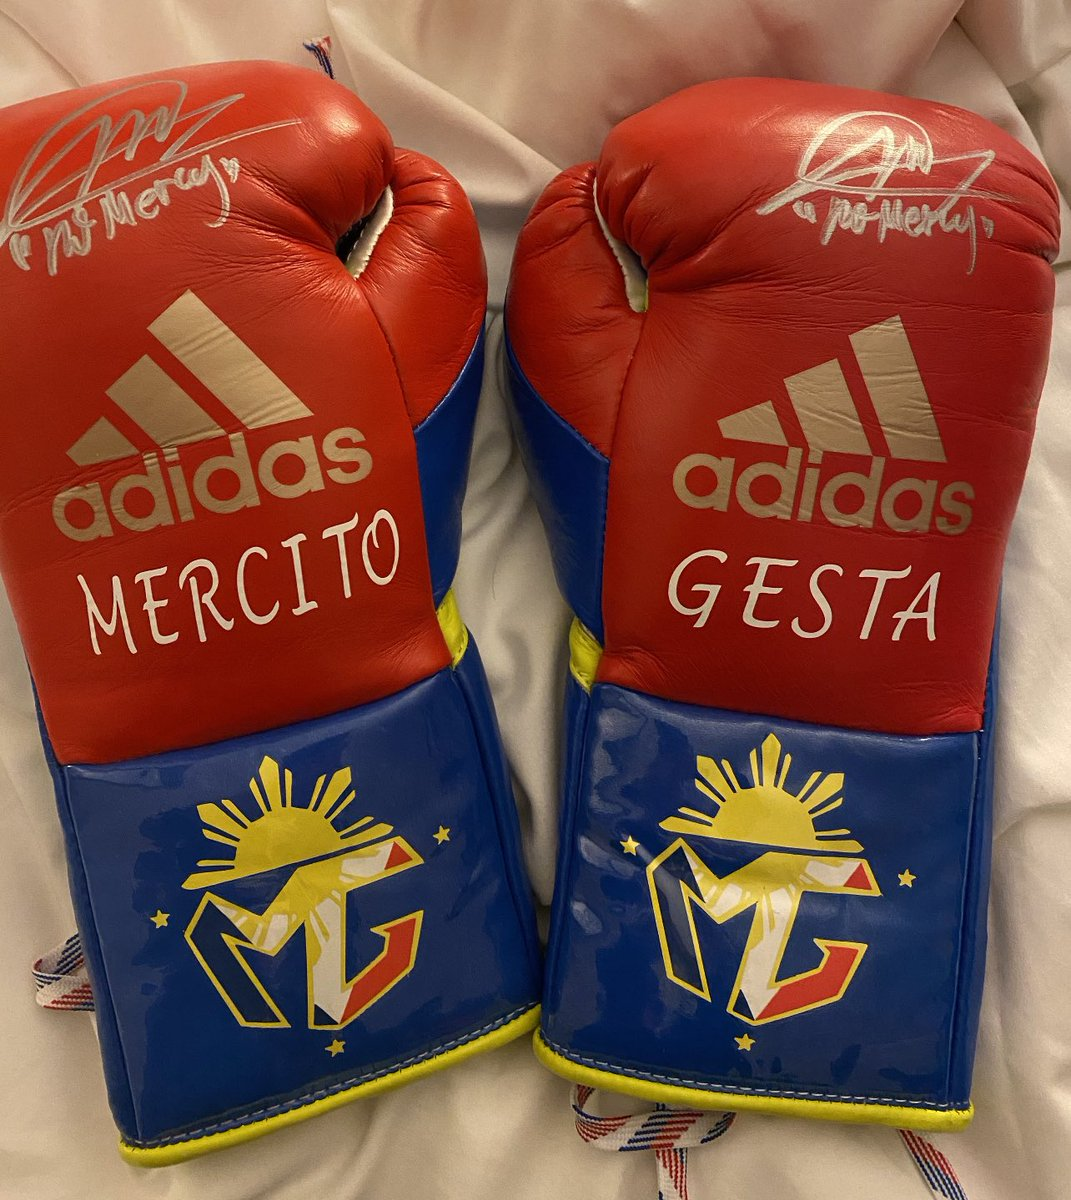 Always thankful to my @adidas boxing family for providing me with great 8oz gloves for my fights. My customized fight gloves in 2019.  #Philippines   #ReadyForSport #AdidasBoxing #LabanParaSaBayan   @cs_adidas @mrboxingguru @chrisdessalles @WildCardBoxing1 @GoldenBoyBoxing